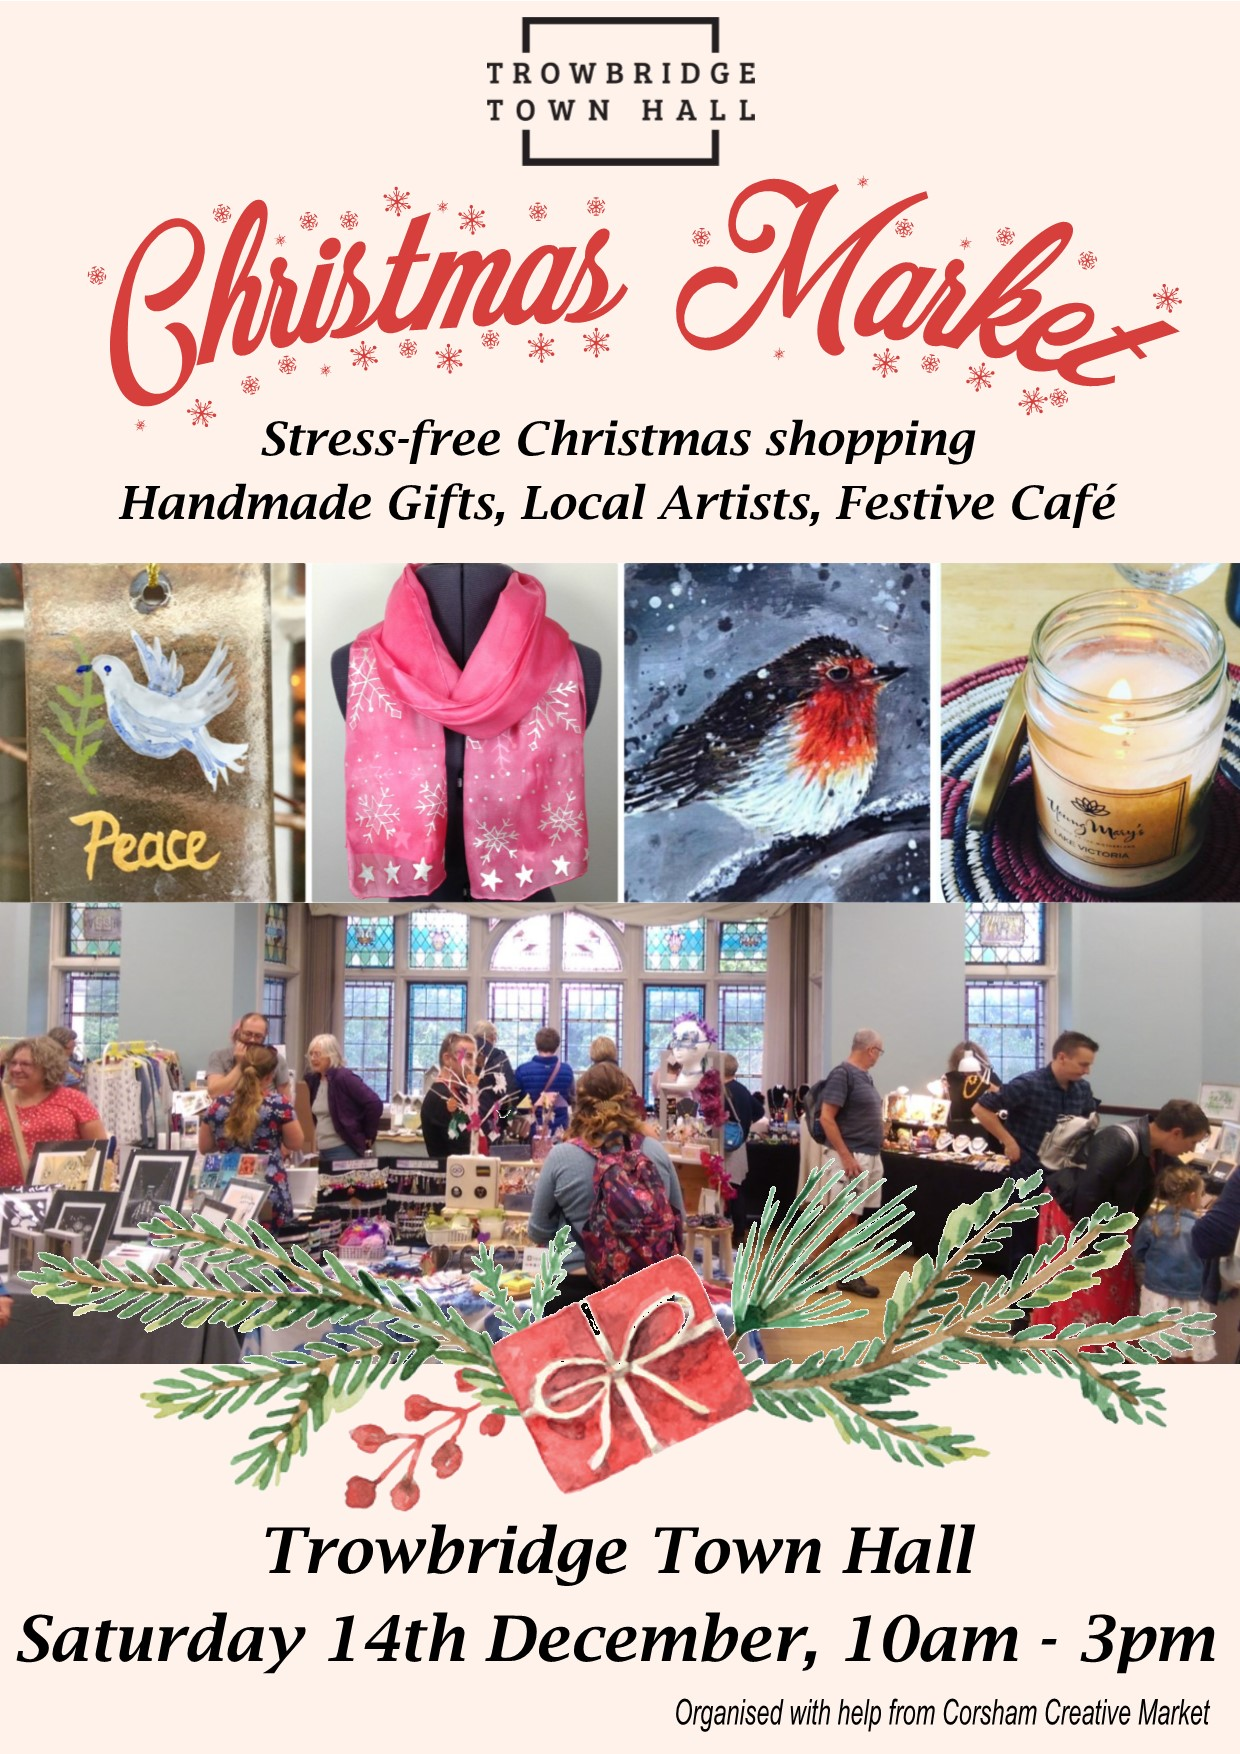 Trowbridge Town Hall Christmas Market